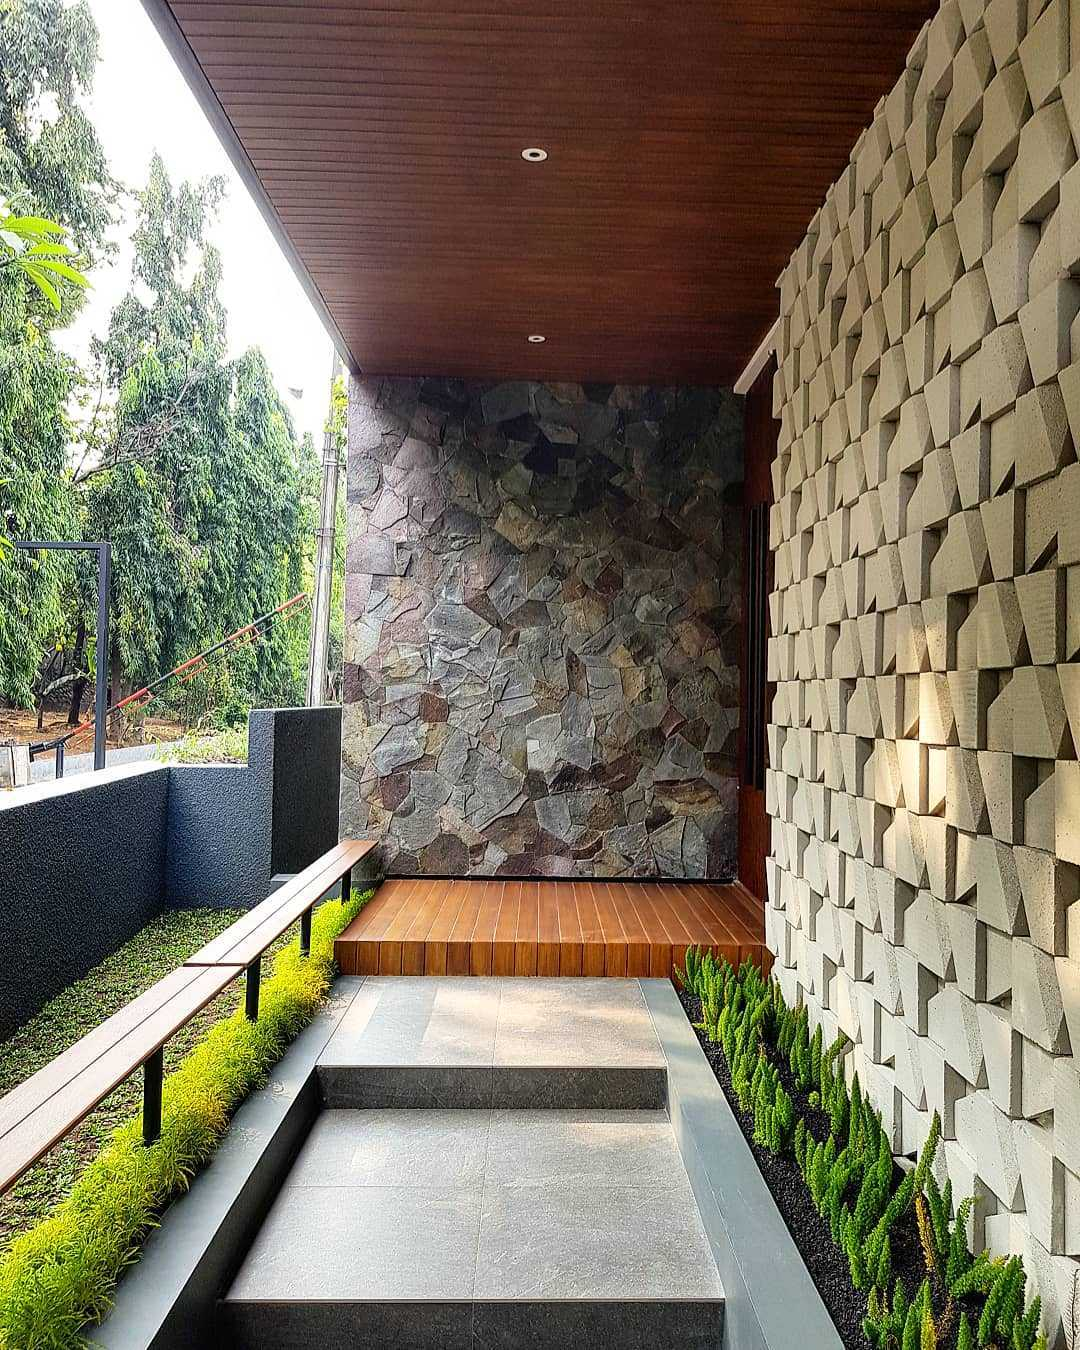 A variety of materials are used to give interest to the walls in this home in Indonesia.